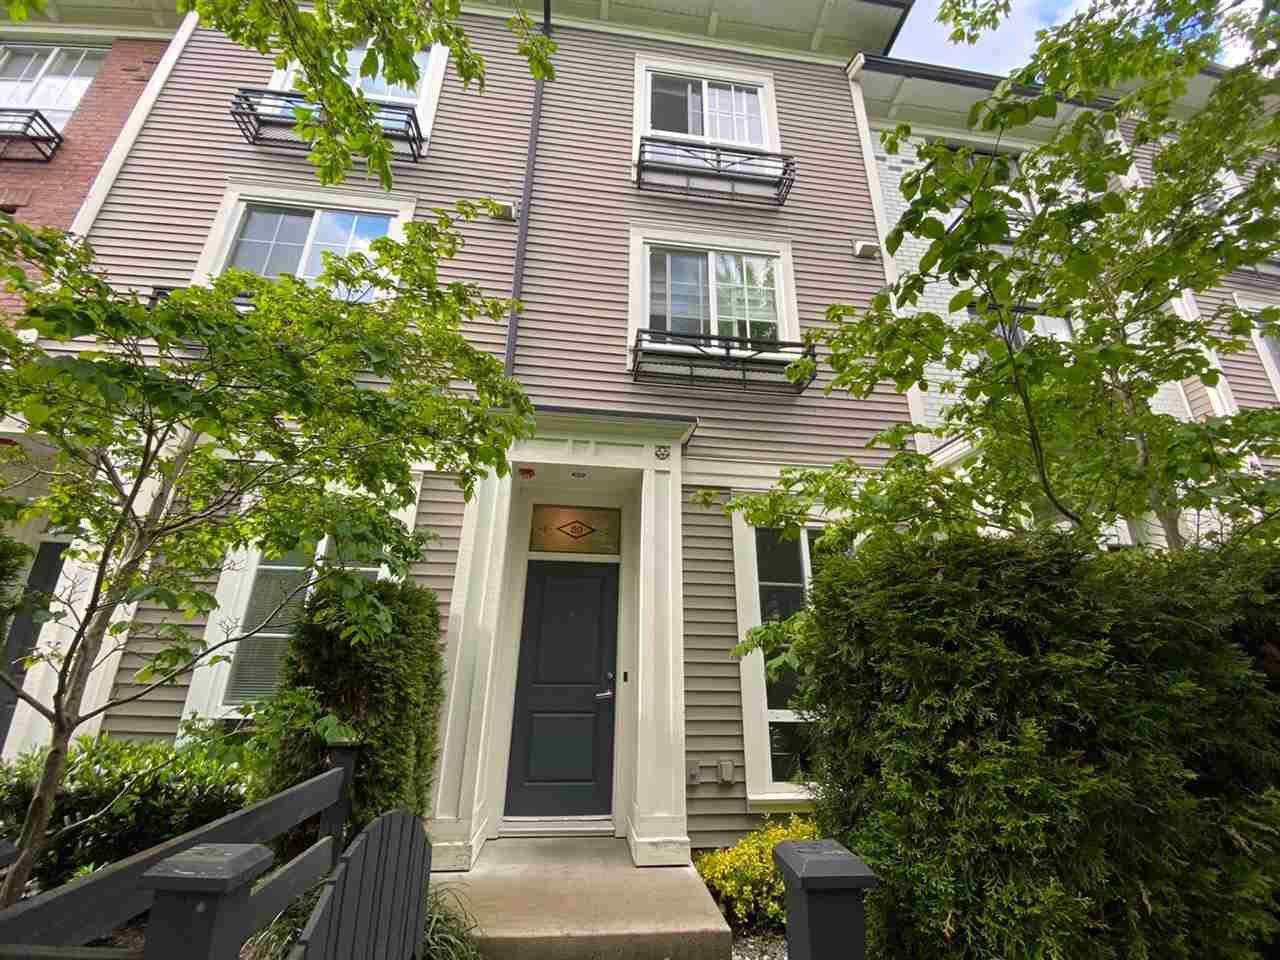 Main Photo: 80 2428 NILE Gate in Port Coquitlam: Riverwood Townhouse for sale : MLS®# R2464644